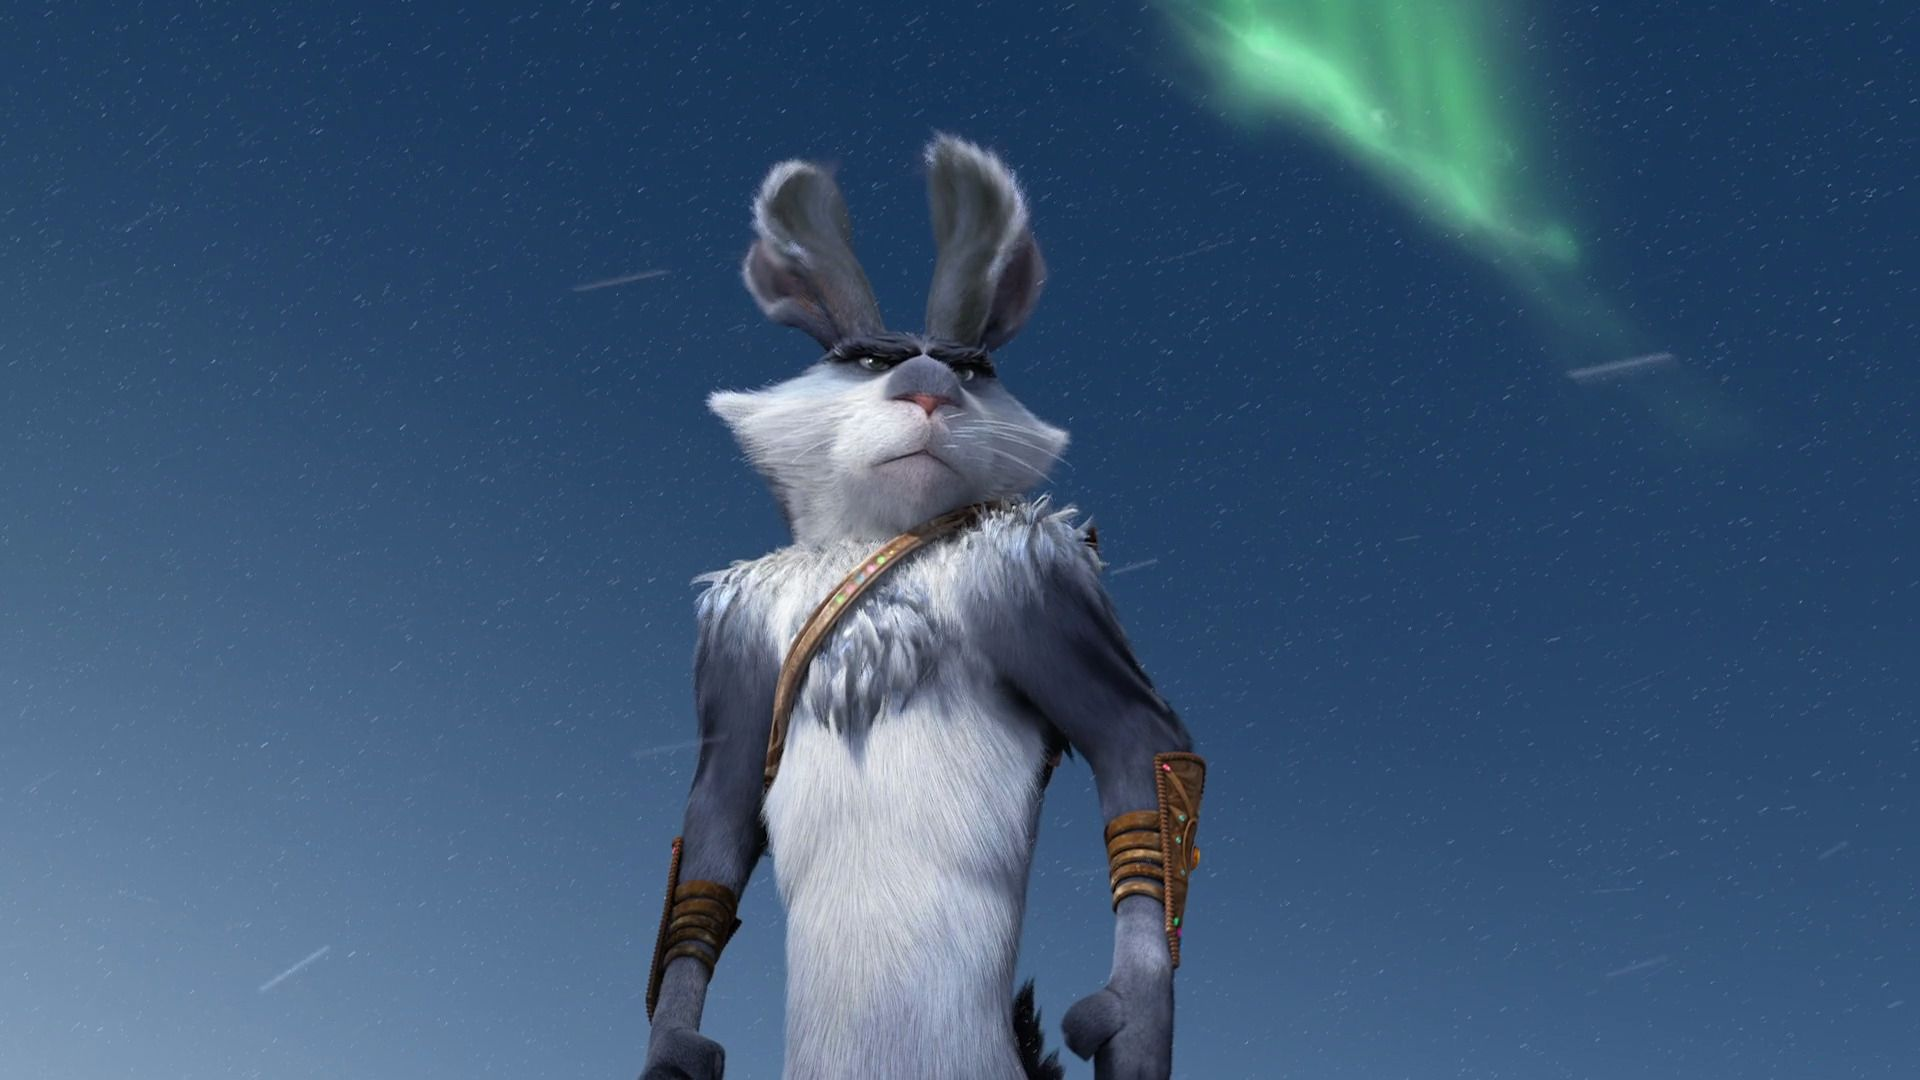 Rise of the guardian easter bunny bunnymund random photo rise of the guardian easter bunny bunnymund random photo altavistaventures Gallery